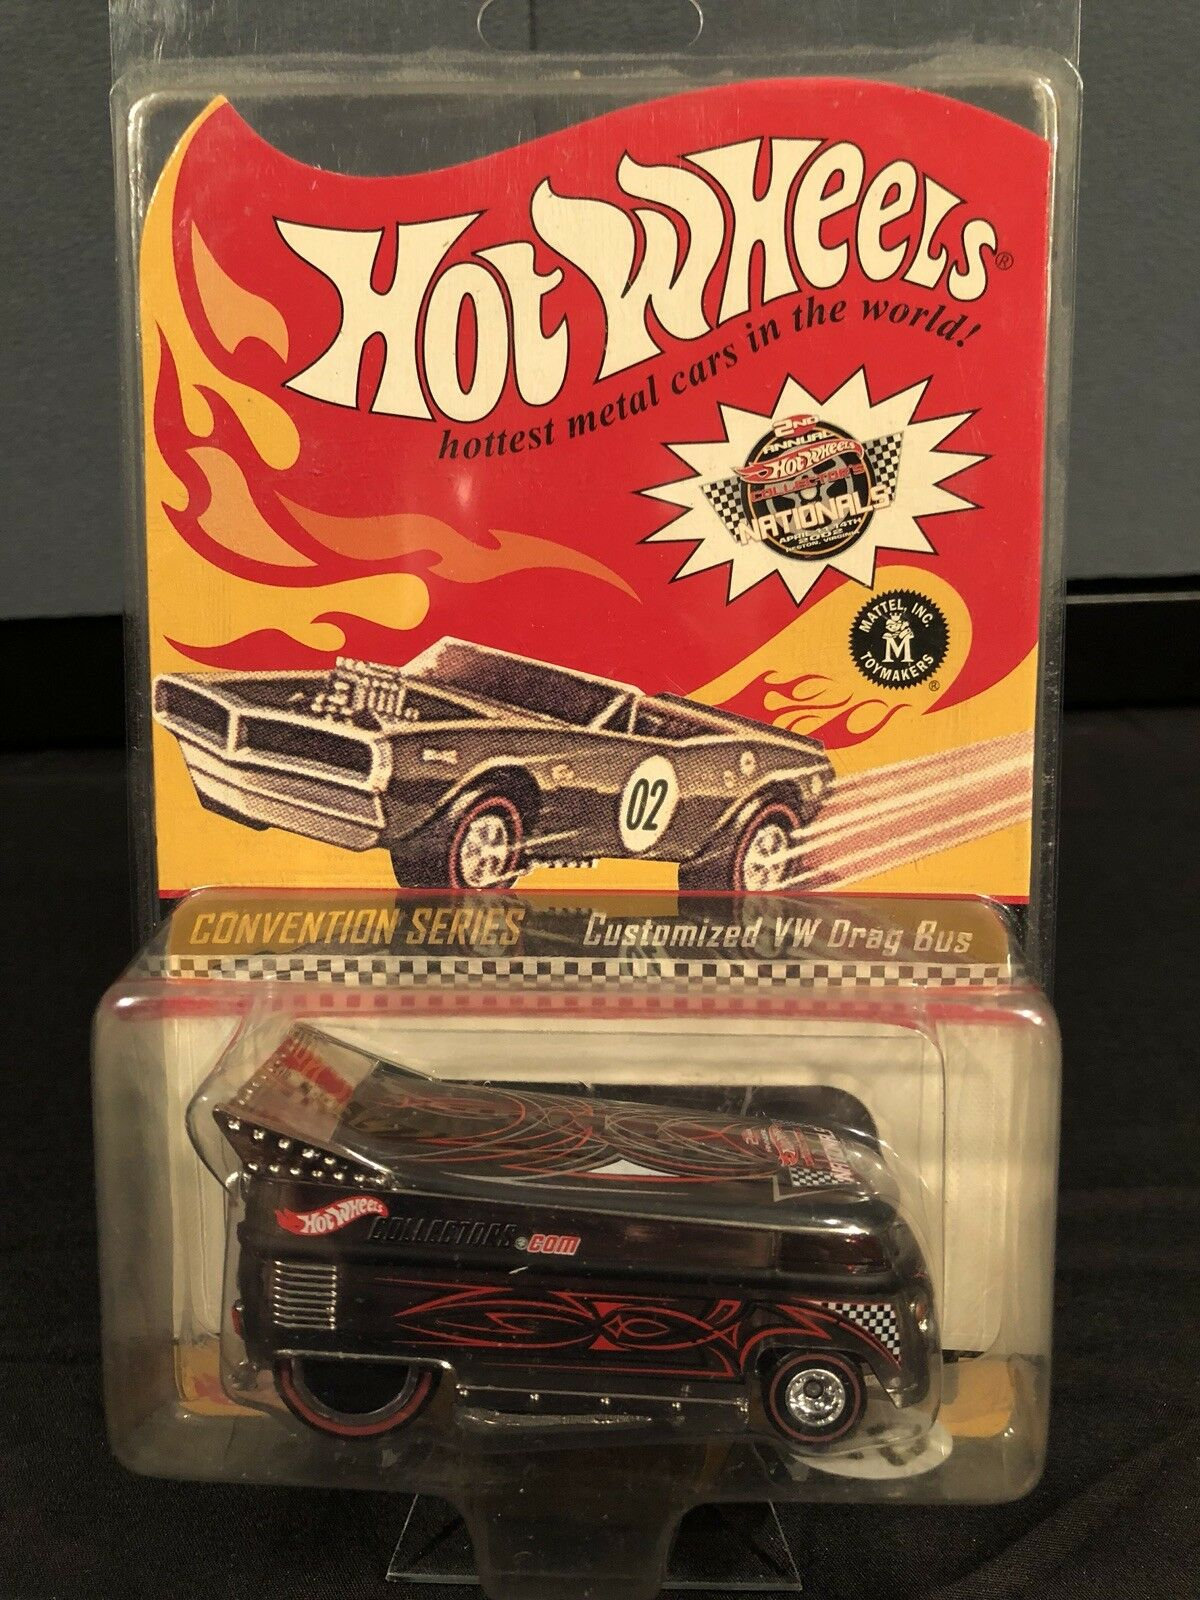 Hot wheels rlc Customized VW Drag Bus 2002 National Convention Piece